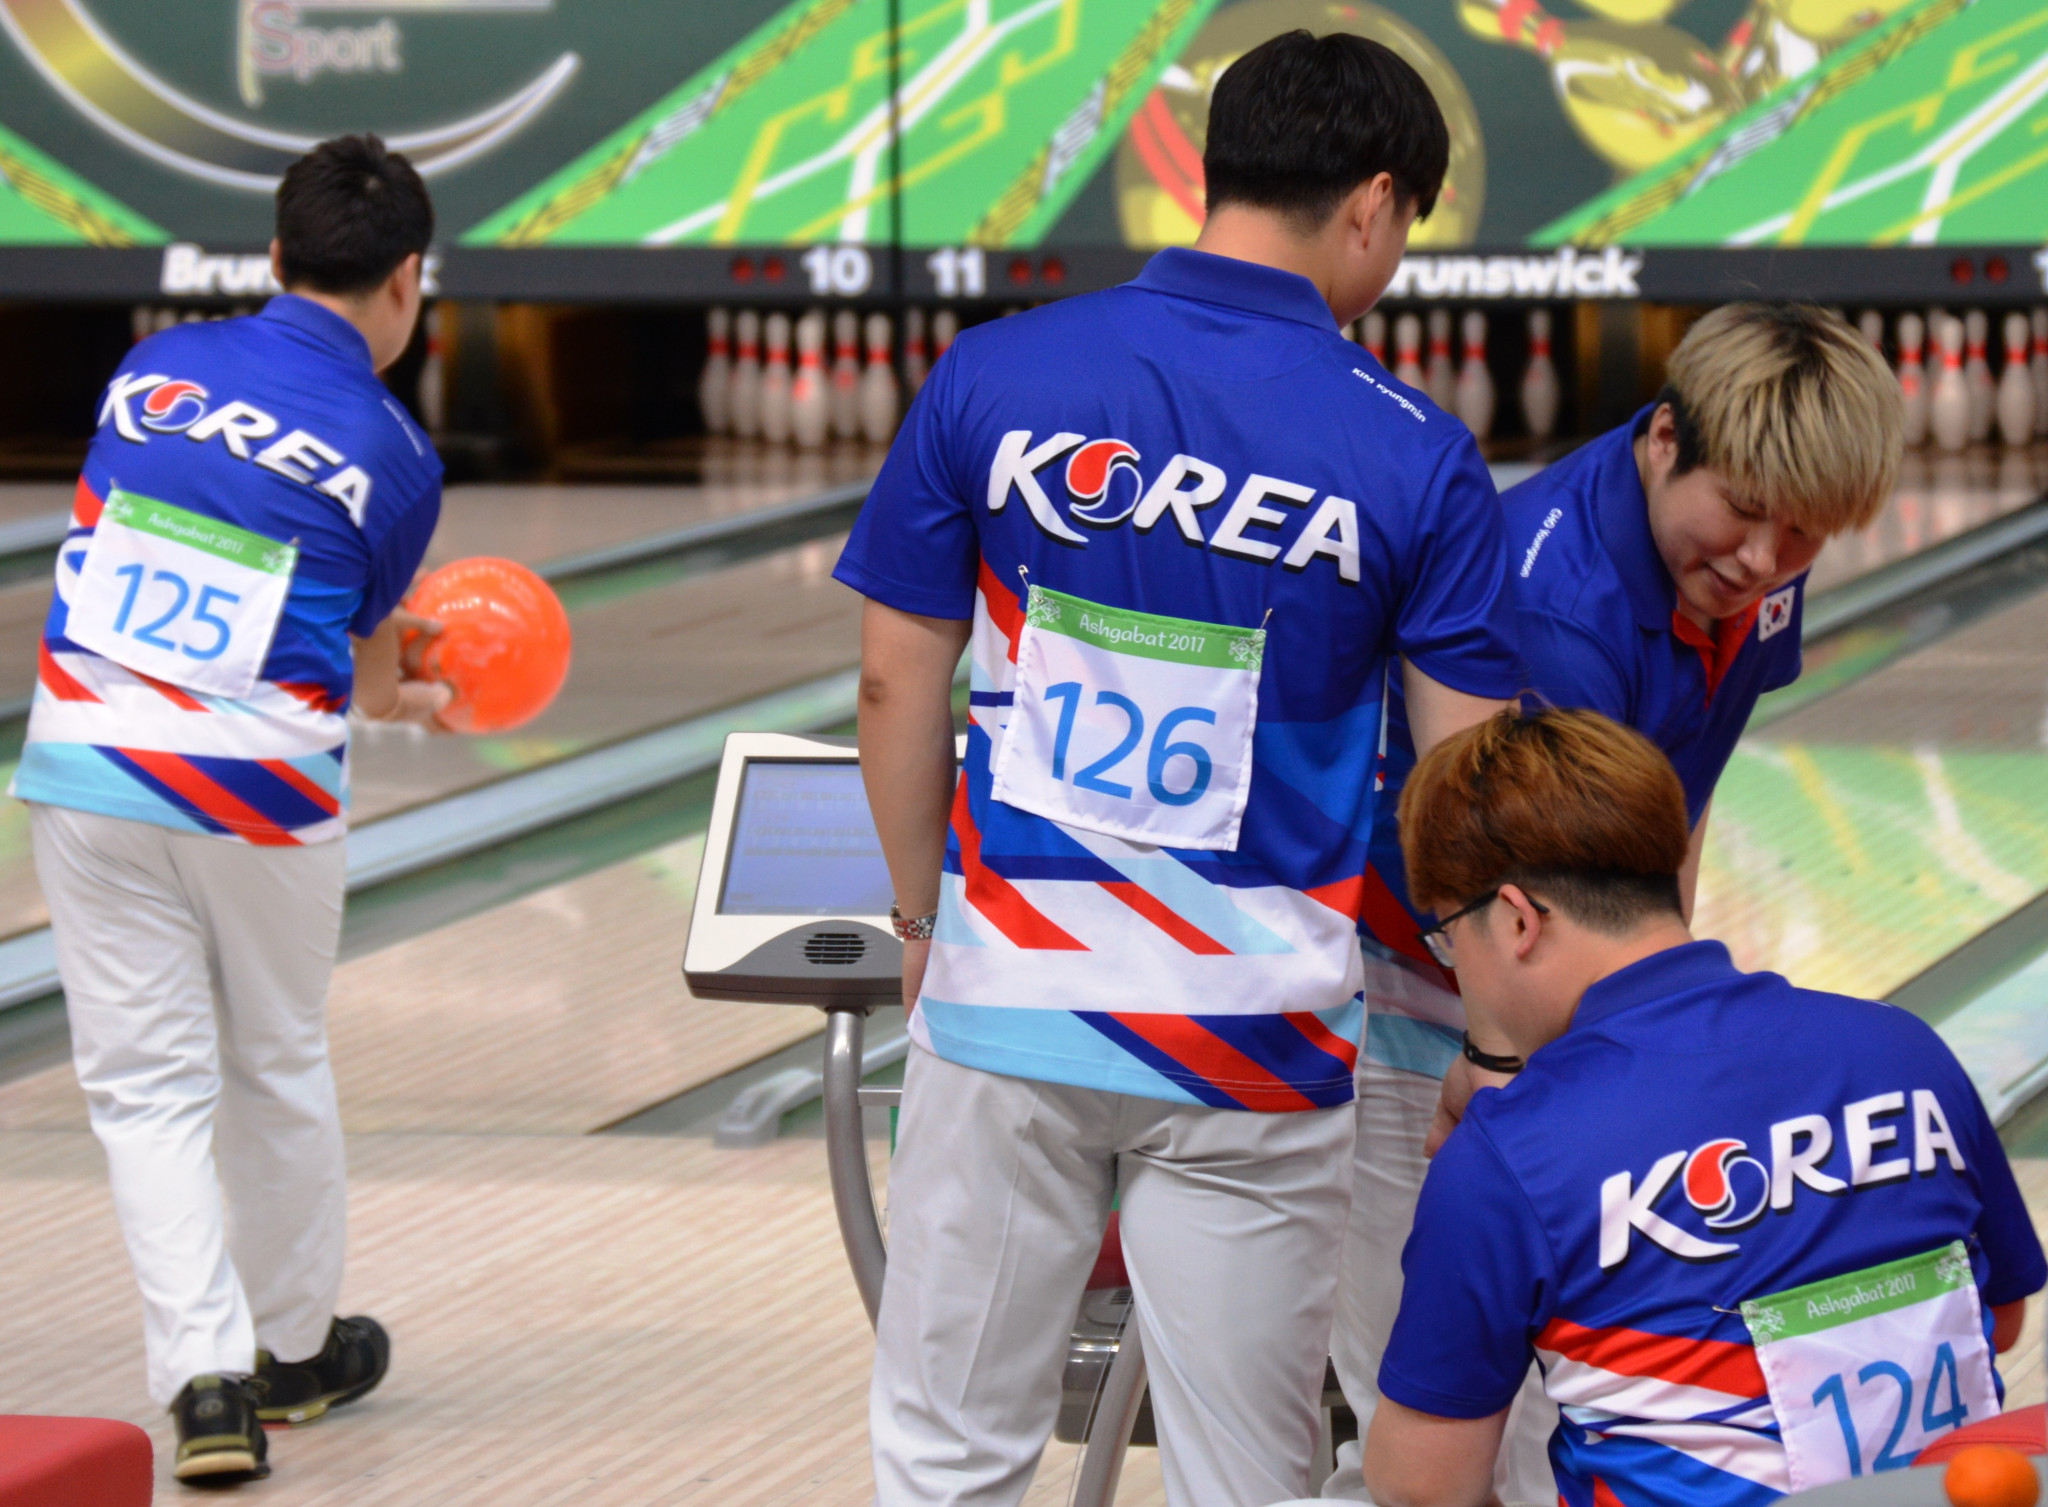 There was an all-South Korean final in the men's doubles bowling event with Cho Young Seon and Kang Heewon overcoming Kim Kyungmin and Choi Bokeum ©OCA